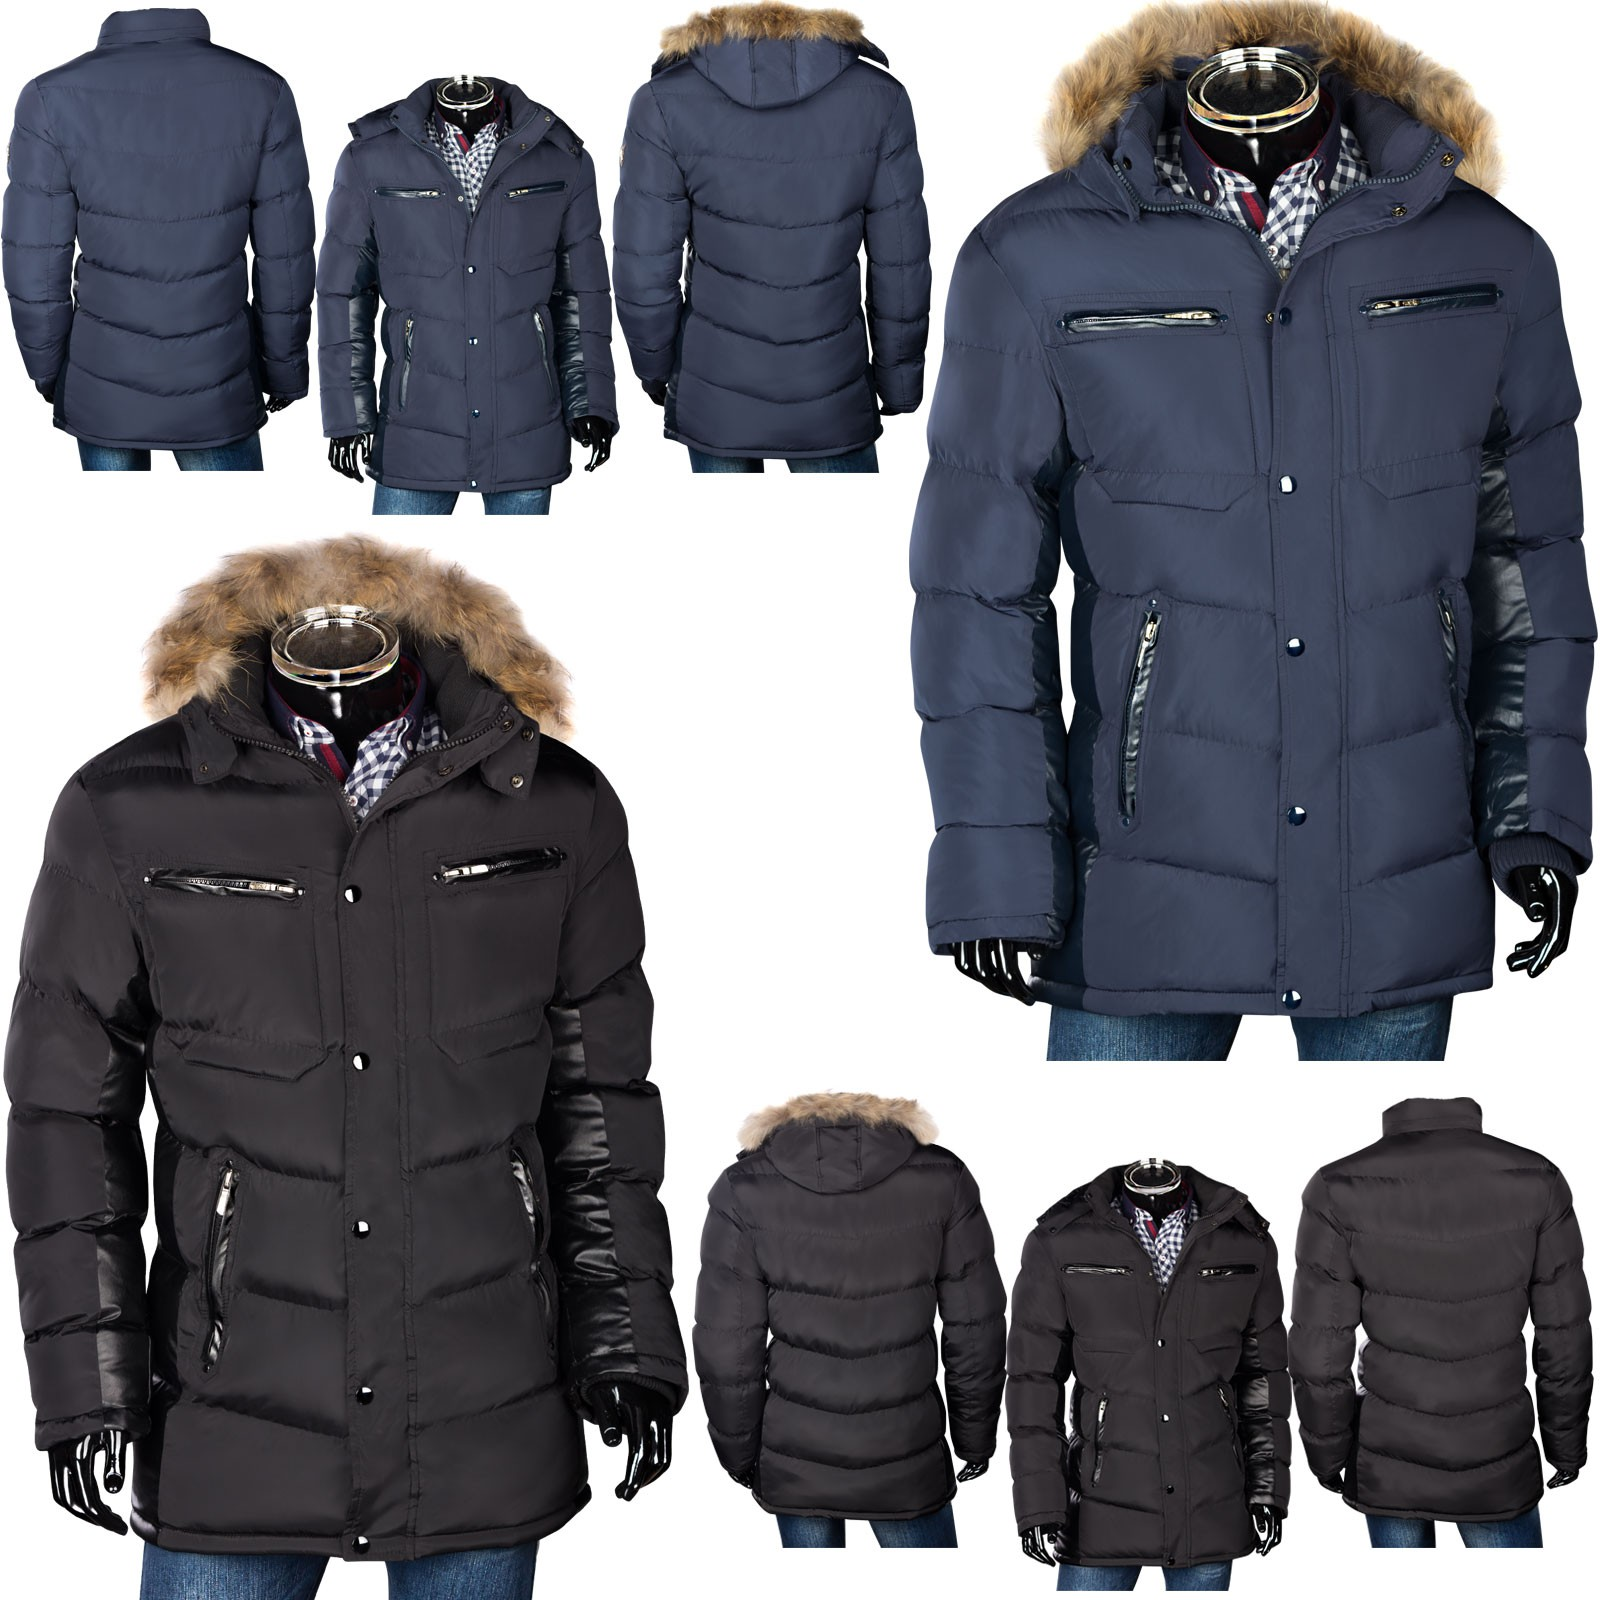 herren wintermantel winterjacke parka mit fellkapuze. Black Bedroom Furniture Sets. Home Design Ideas